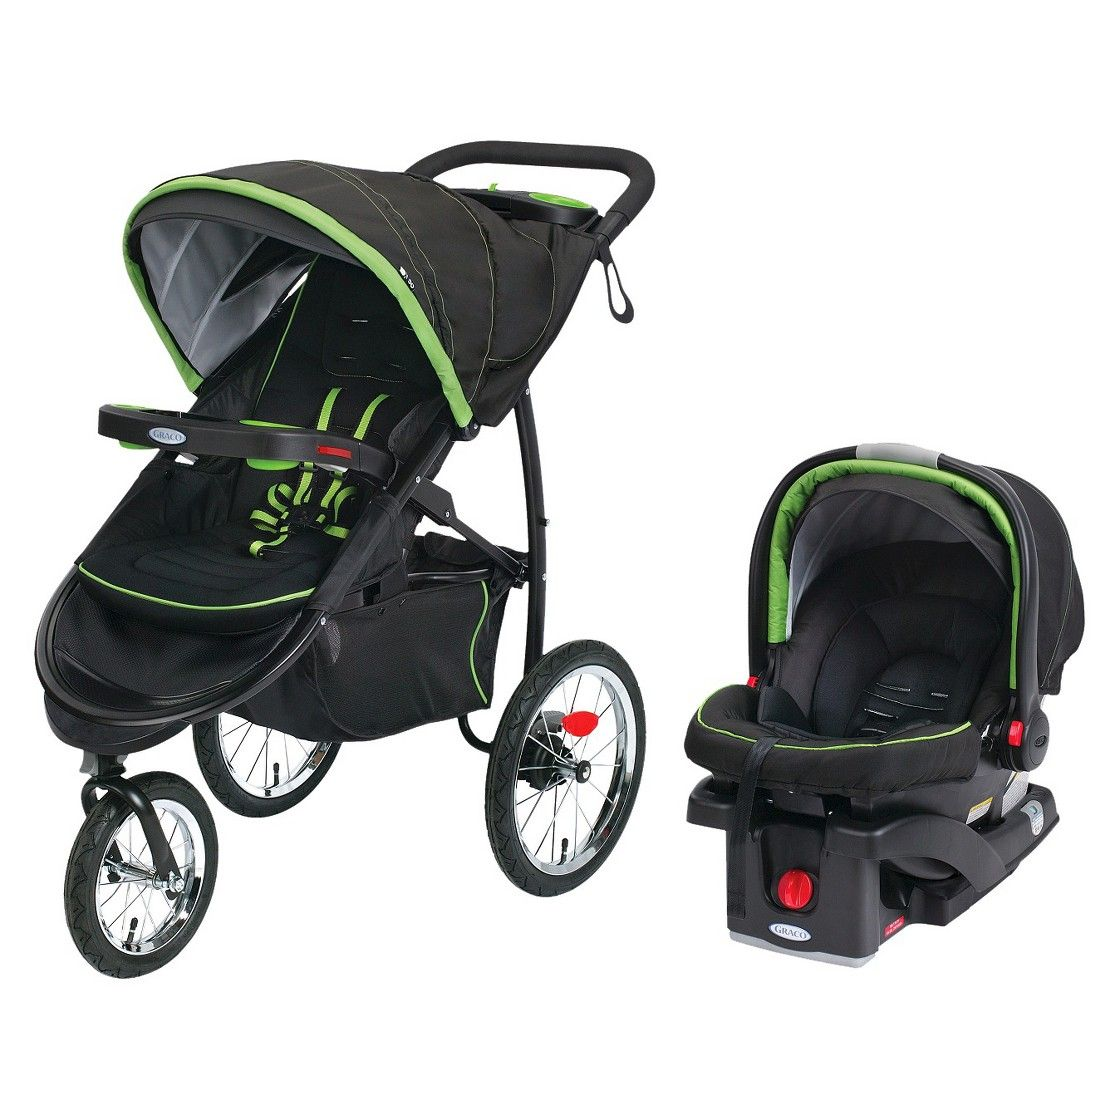 Graco FastAction Jogger Click Connect XT Travel System